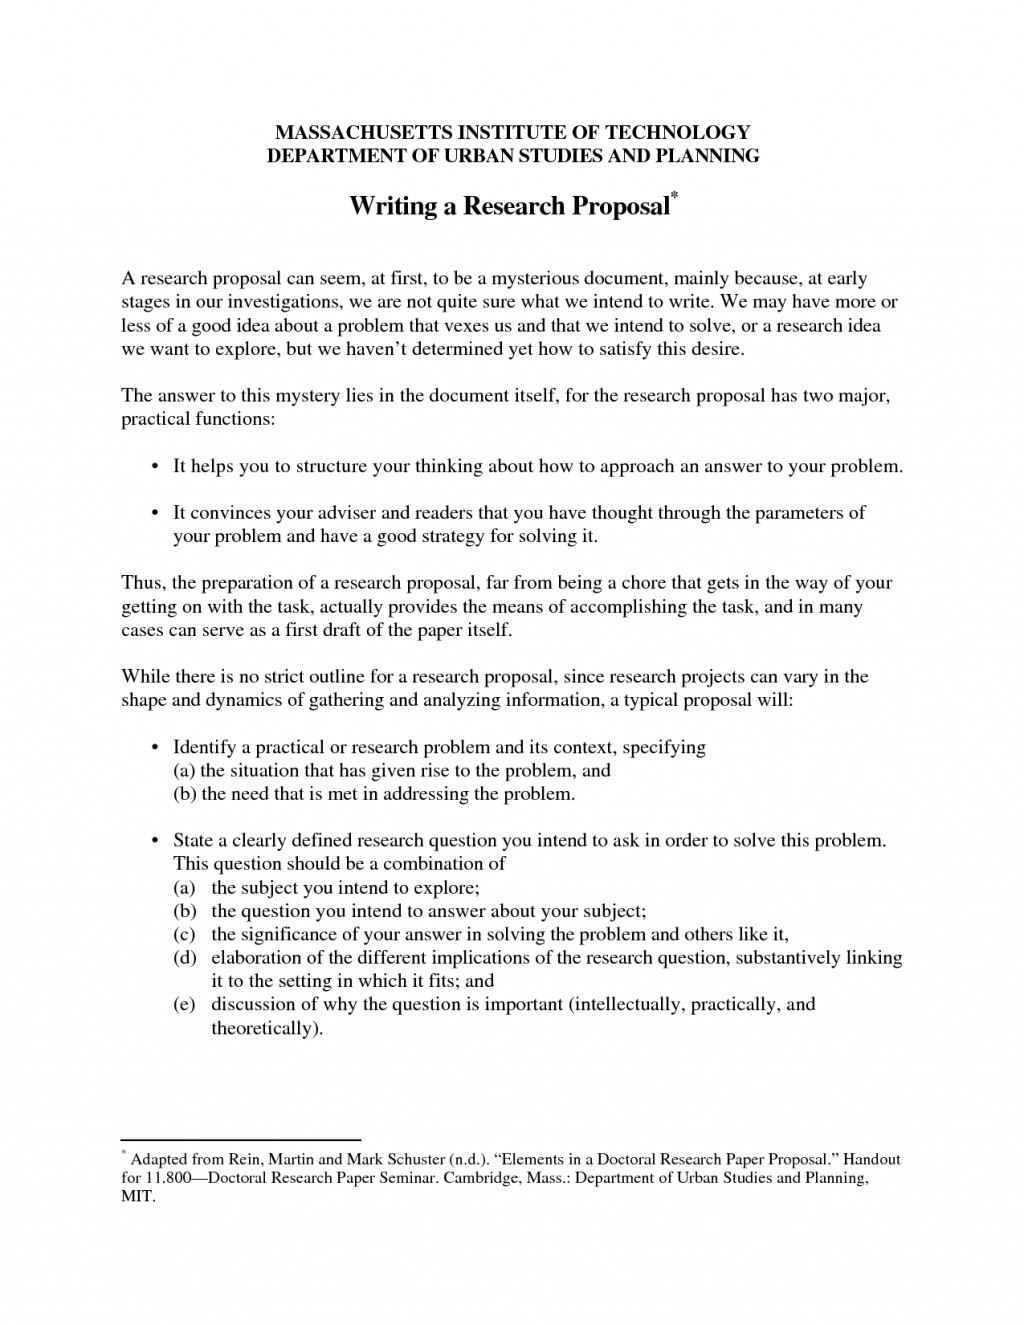 028 Research Paper Quotes What Does Proposal Look Like 629236 Amazing Funny Direct Mla Format Large